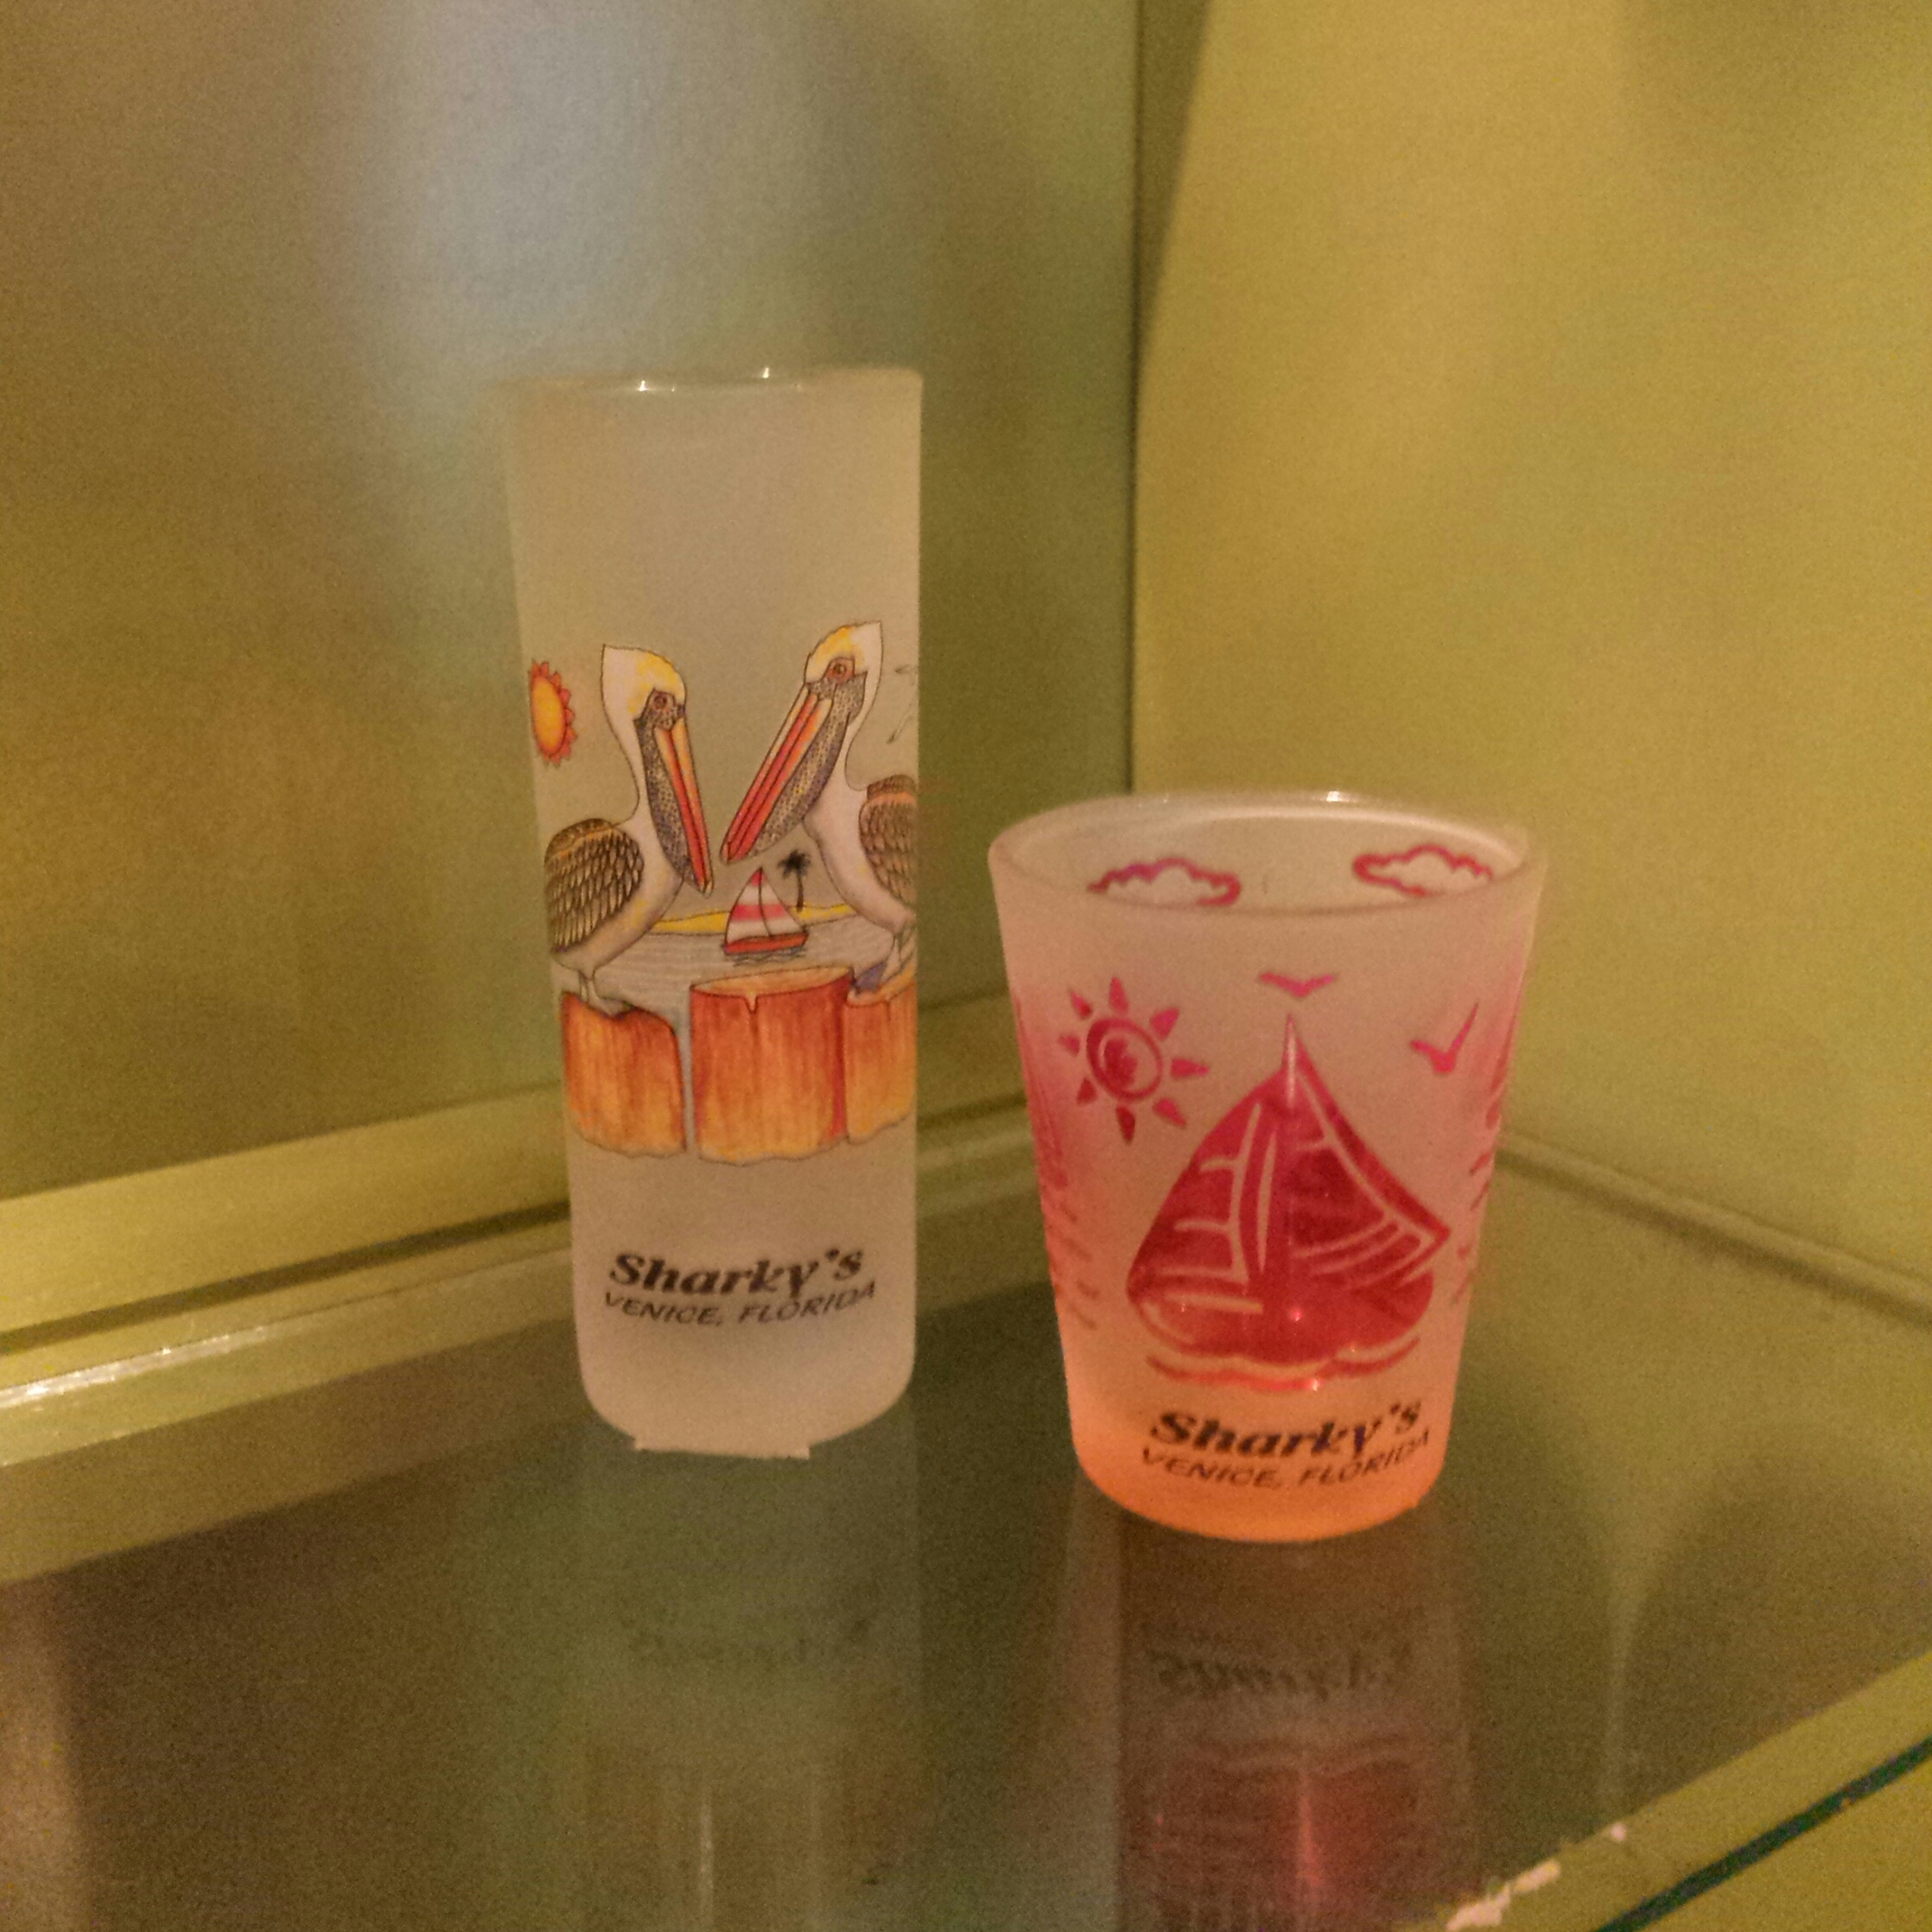 Shot Glasses 5.99-6.99